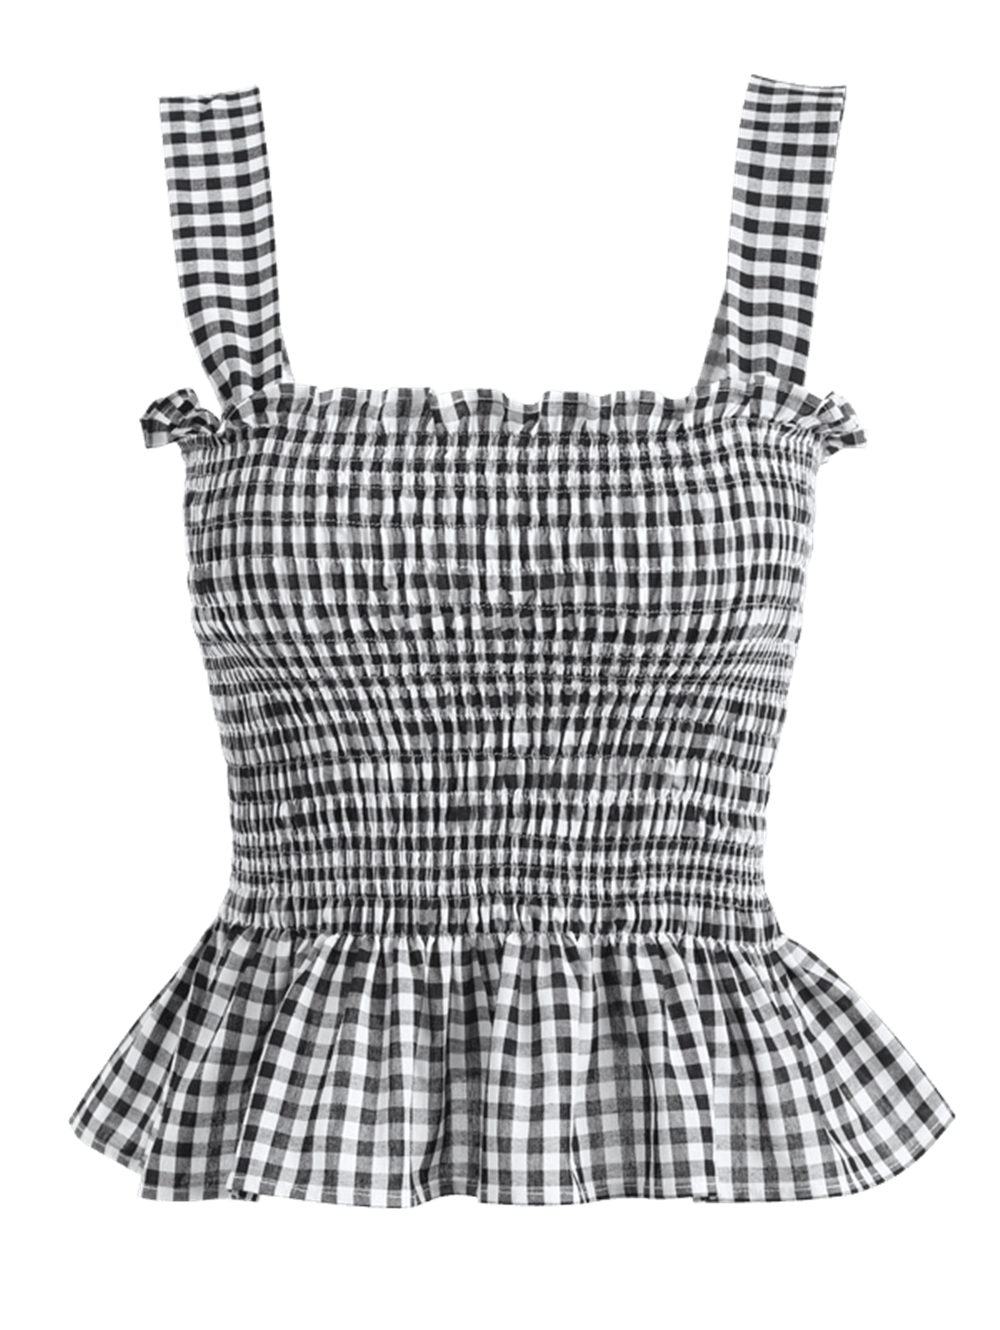 Women Sexy Striped Camis Gingham Shirred   Tank     Top   Cotton Square Neck Plaid High Waist Sleeveless Shirt Lady Casual Summer   Tank